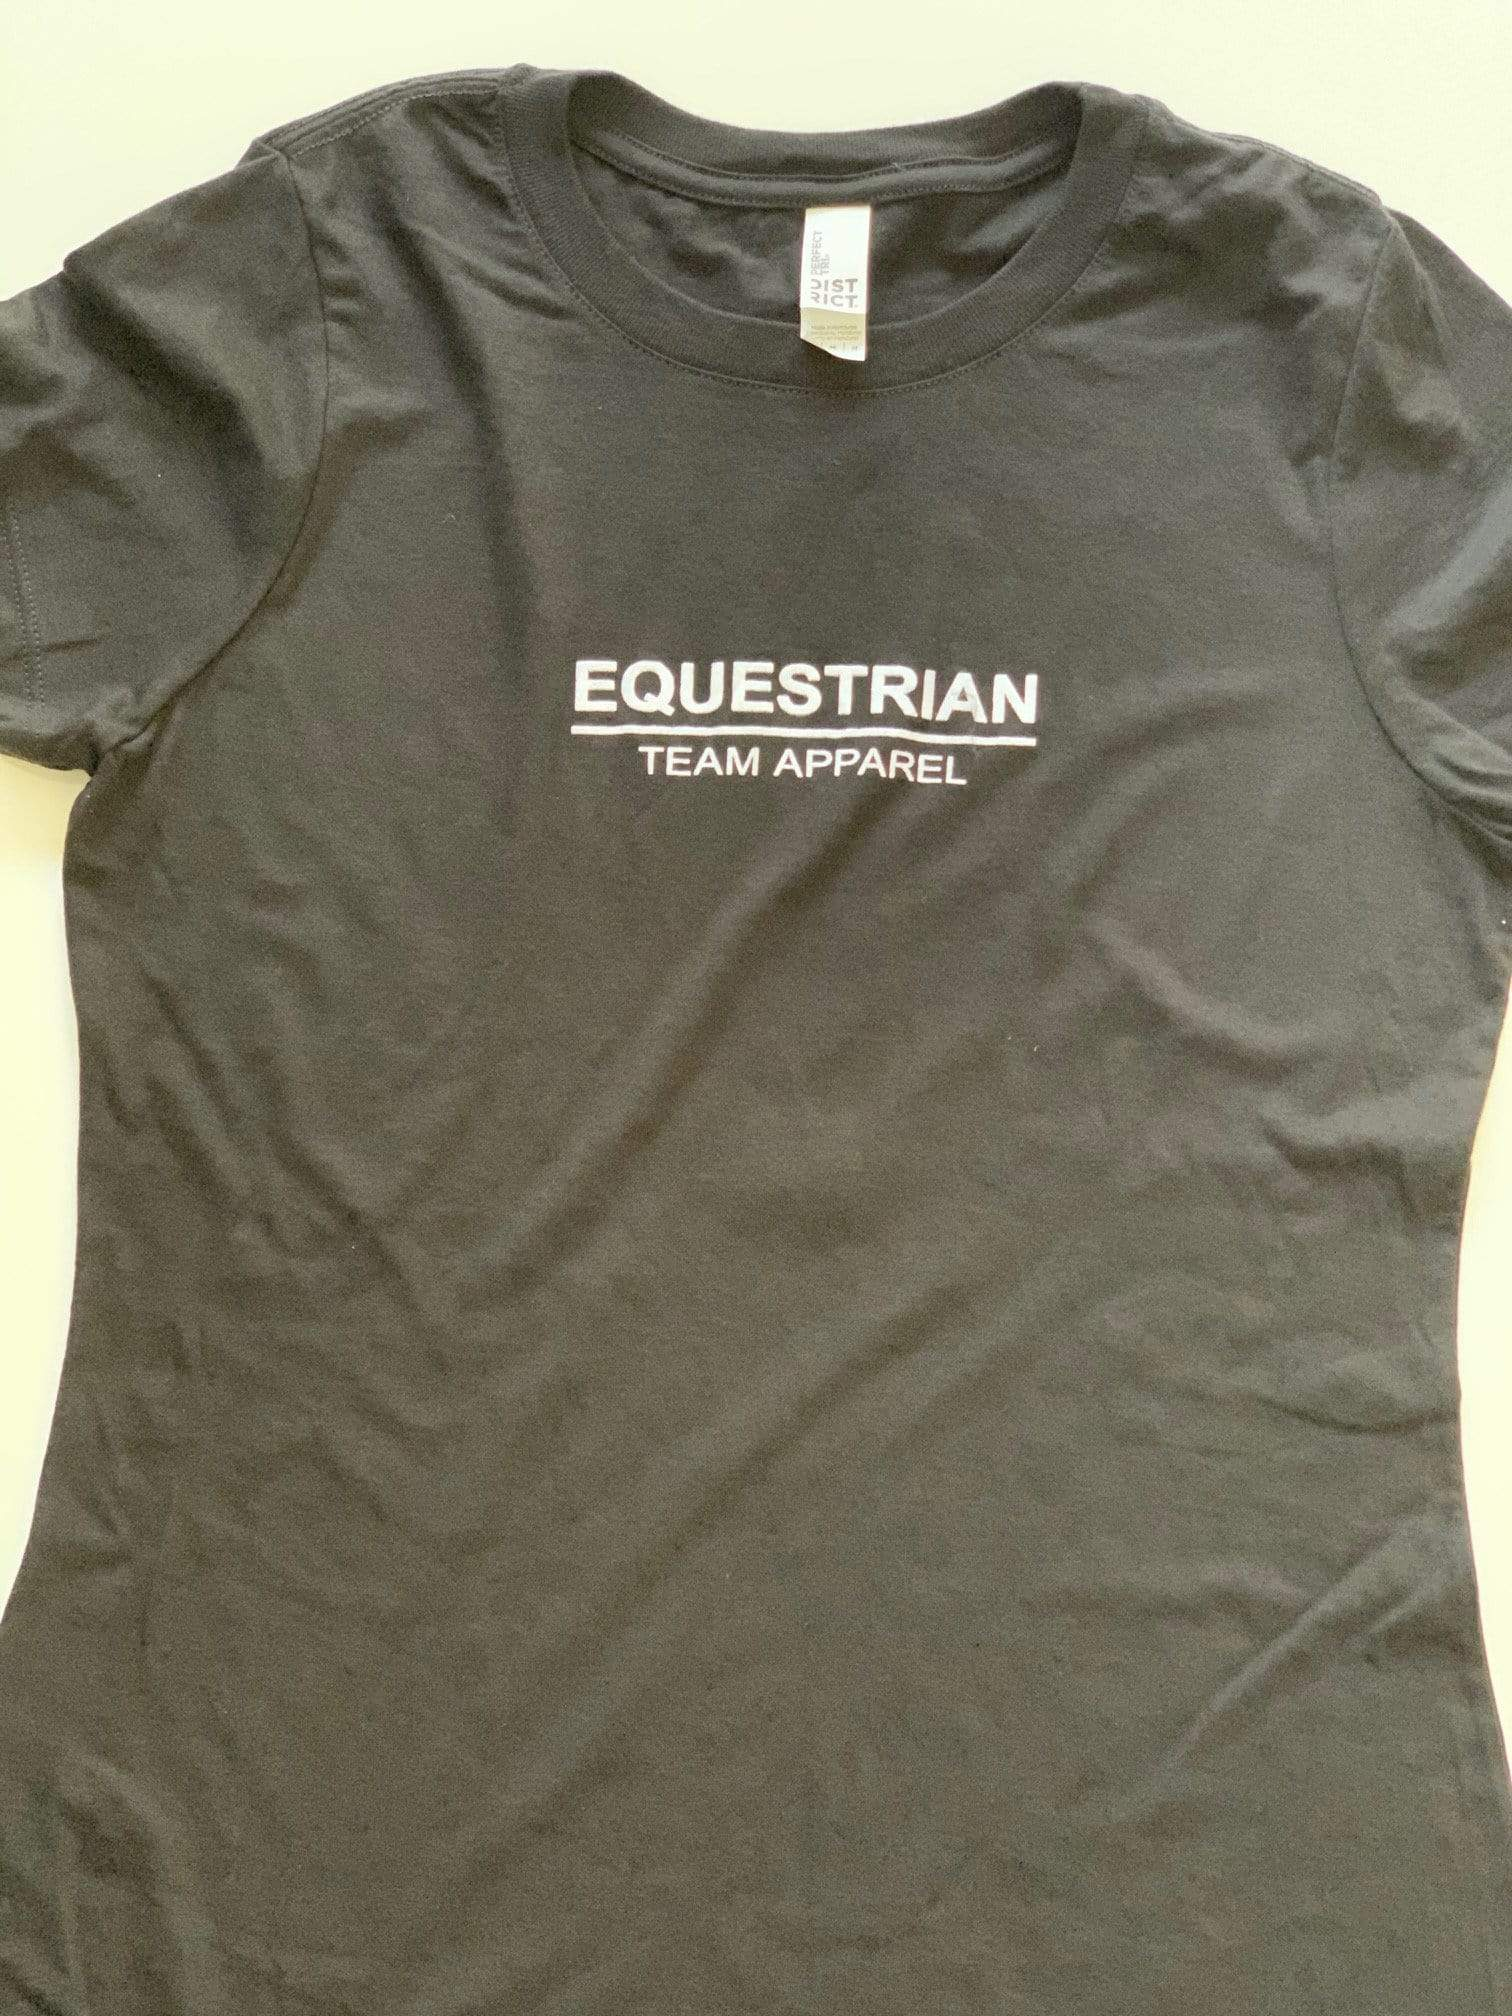 Equestrian Team Apparel Graphic Tees Men's Tryon Graphic Tee - ETA equestrian team apparel online tack store mobile tack store custom farm apparel custom show stable clothing equestrian lifestyle horse show clothing riding clothes horses equestrian tack store